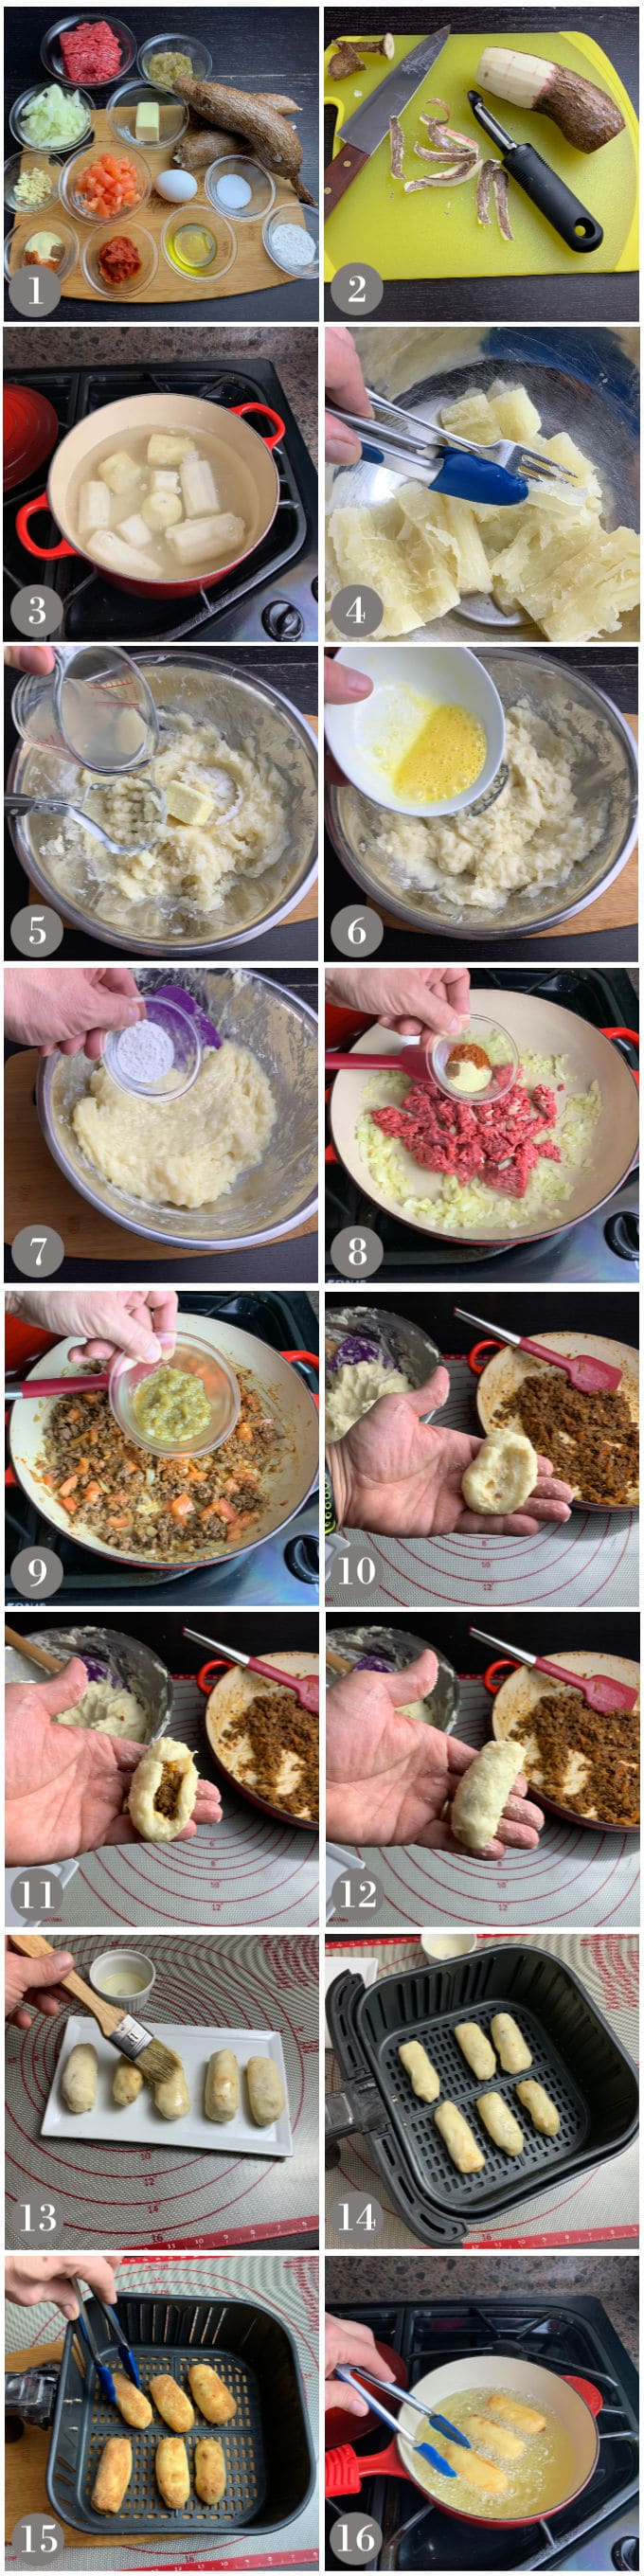 A collage of photos showing the steps to make Panamanian yuca fritters - carimañolas.